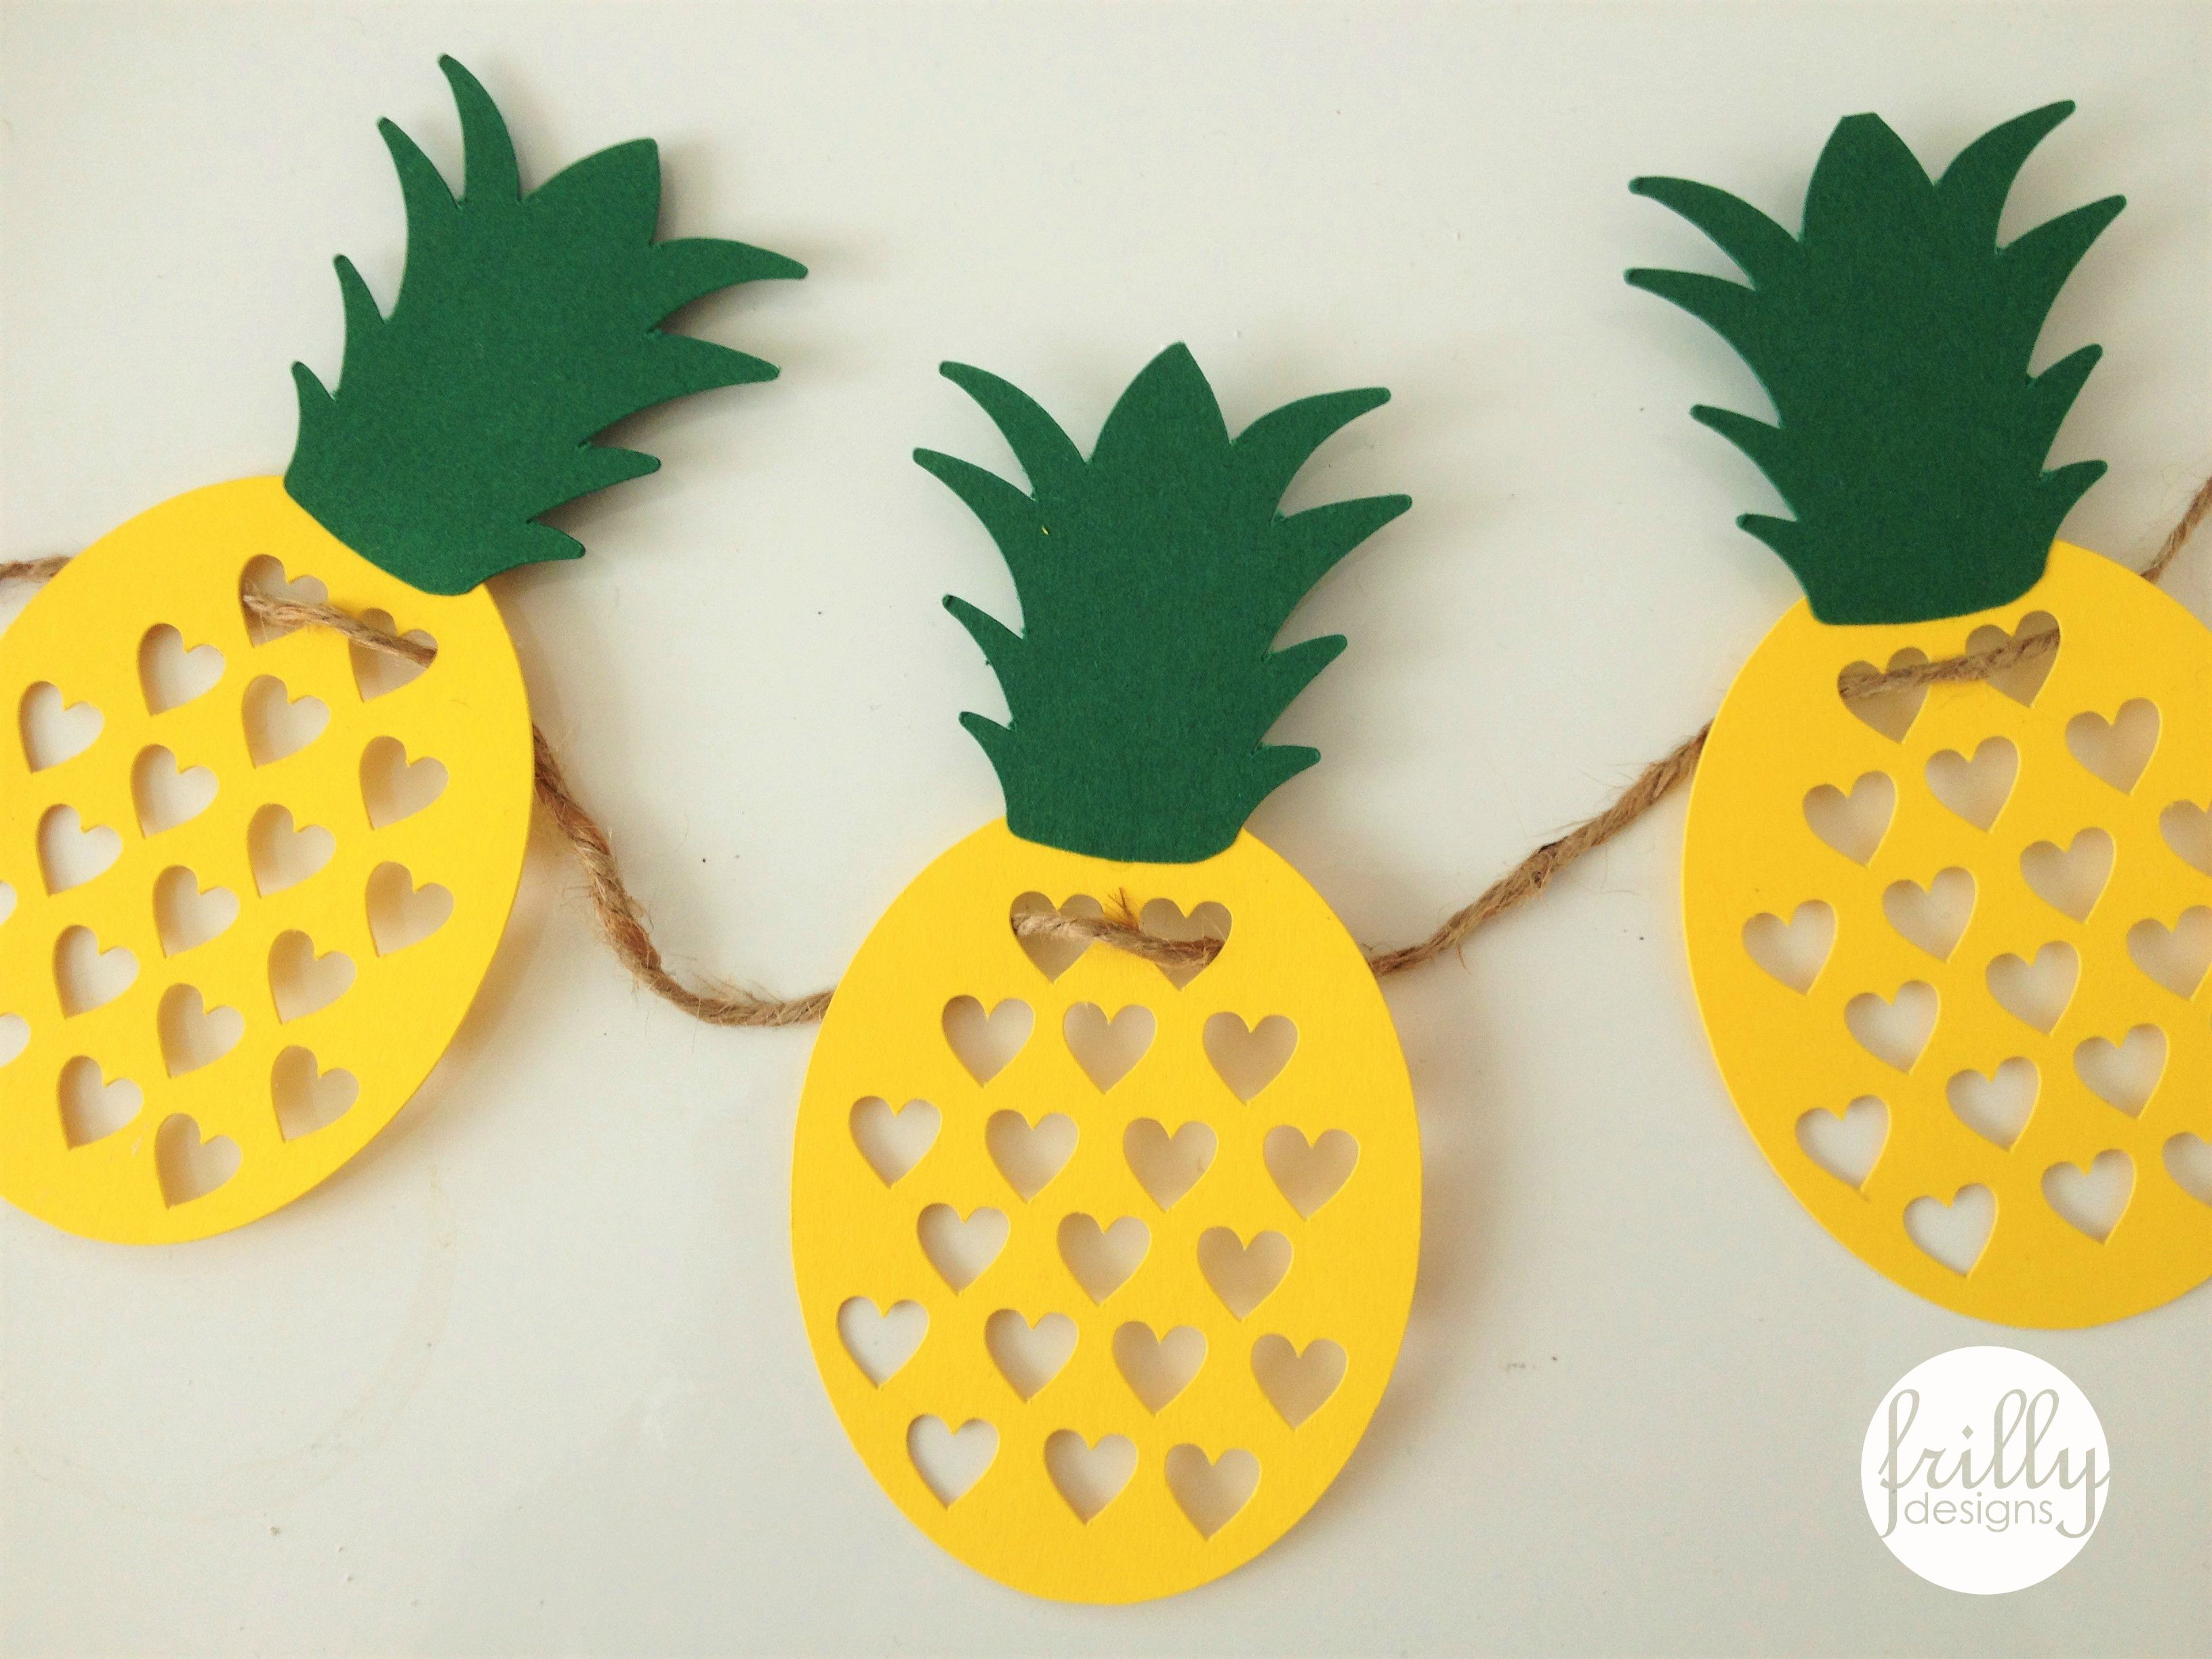 Party Like A Pineapple!! #frillydesigns #dawanda #pineapple #girlande #party  https://www.facebook.com/frillydesigns1/ www.frillydesigns.com